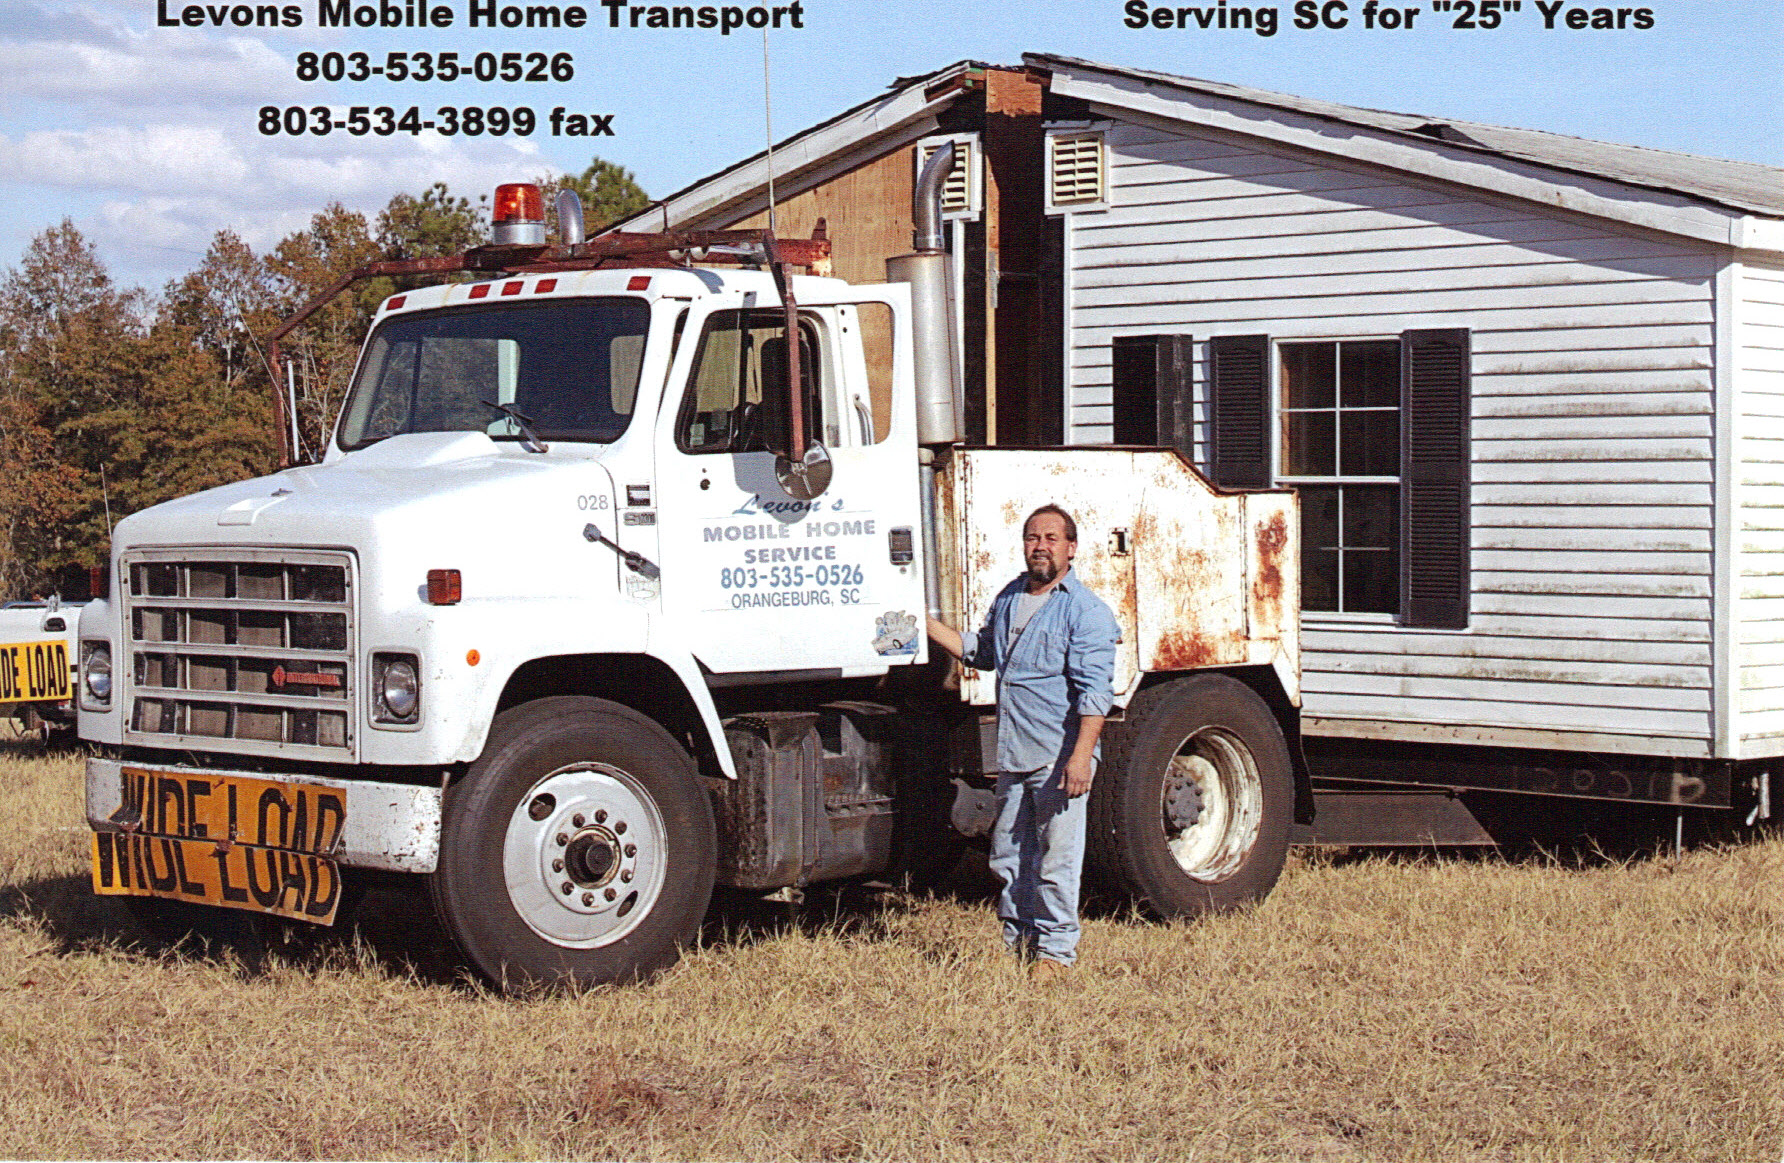 Levon's Mobile Home Transporting & Set Up Neeses, SC 29107 ... on mobile telecommunications, mobile machinery, mobile communications, mobile security, water jetting services, mobile trucks, mobile home, mobile food, mobile advertising,